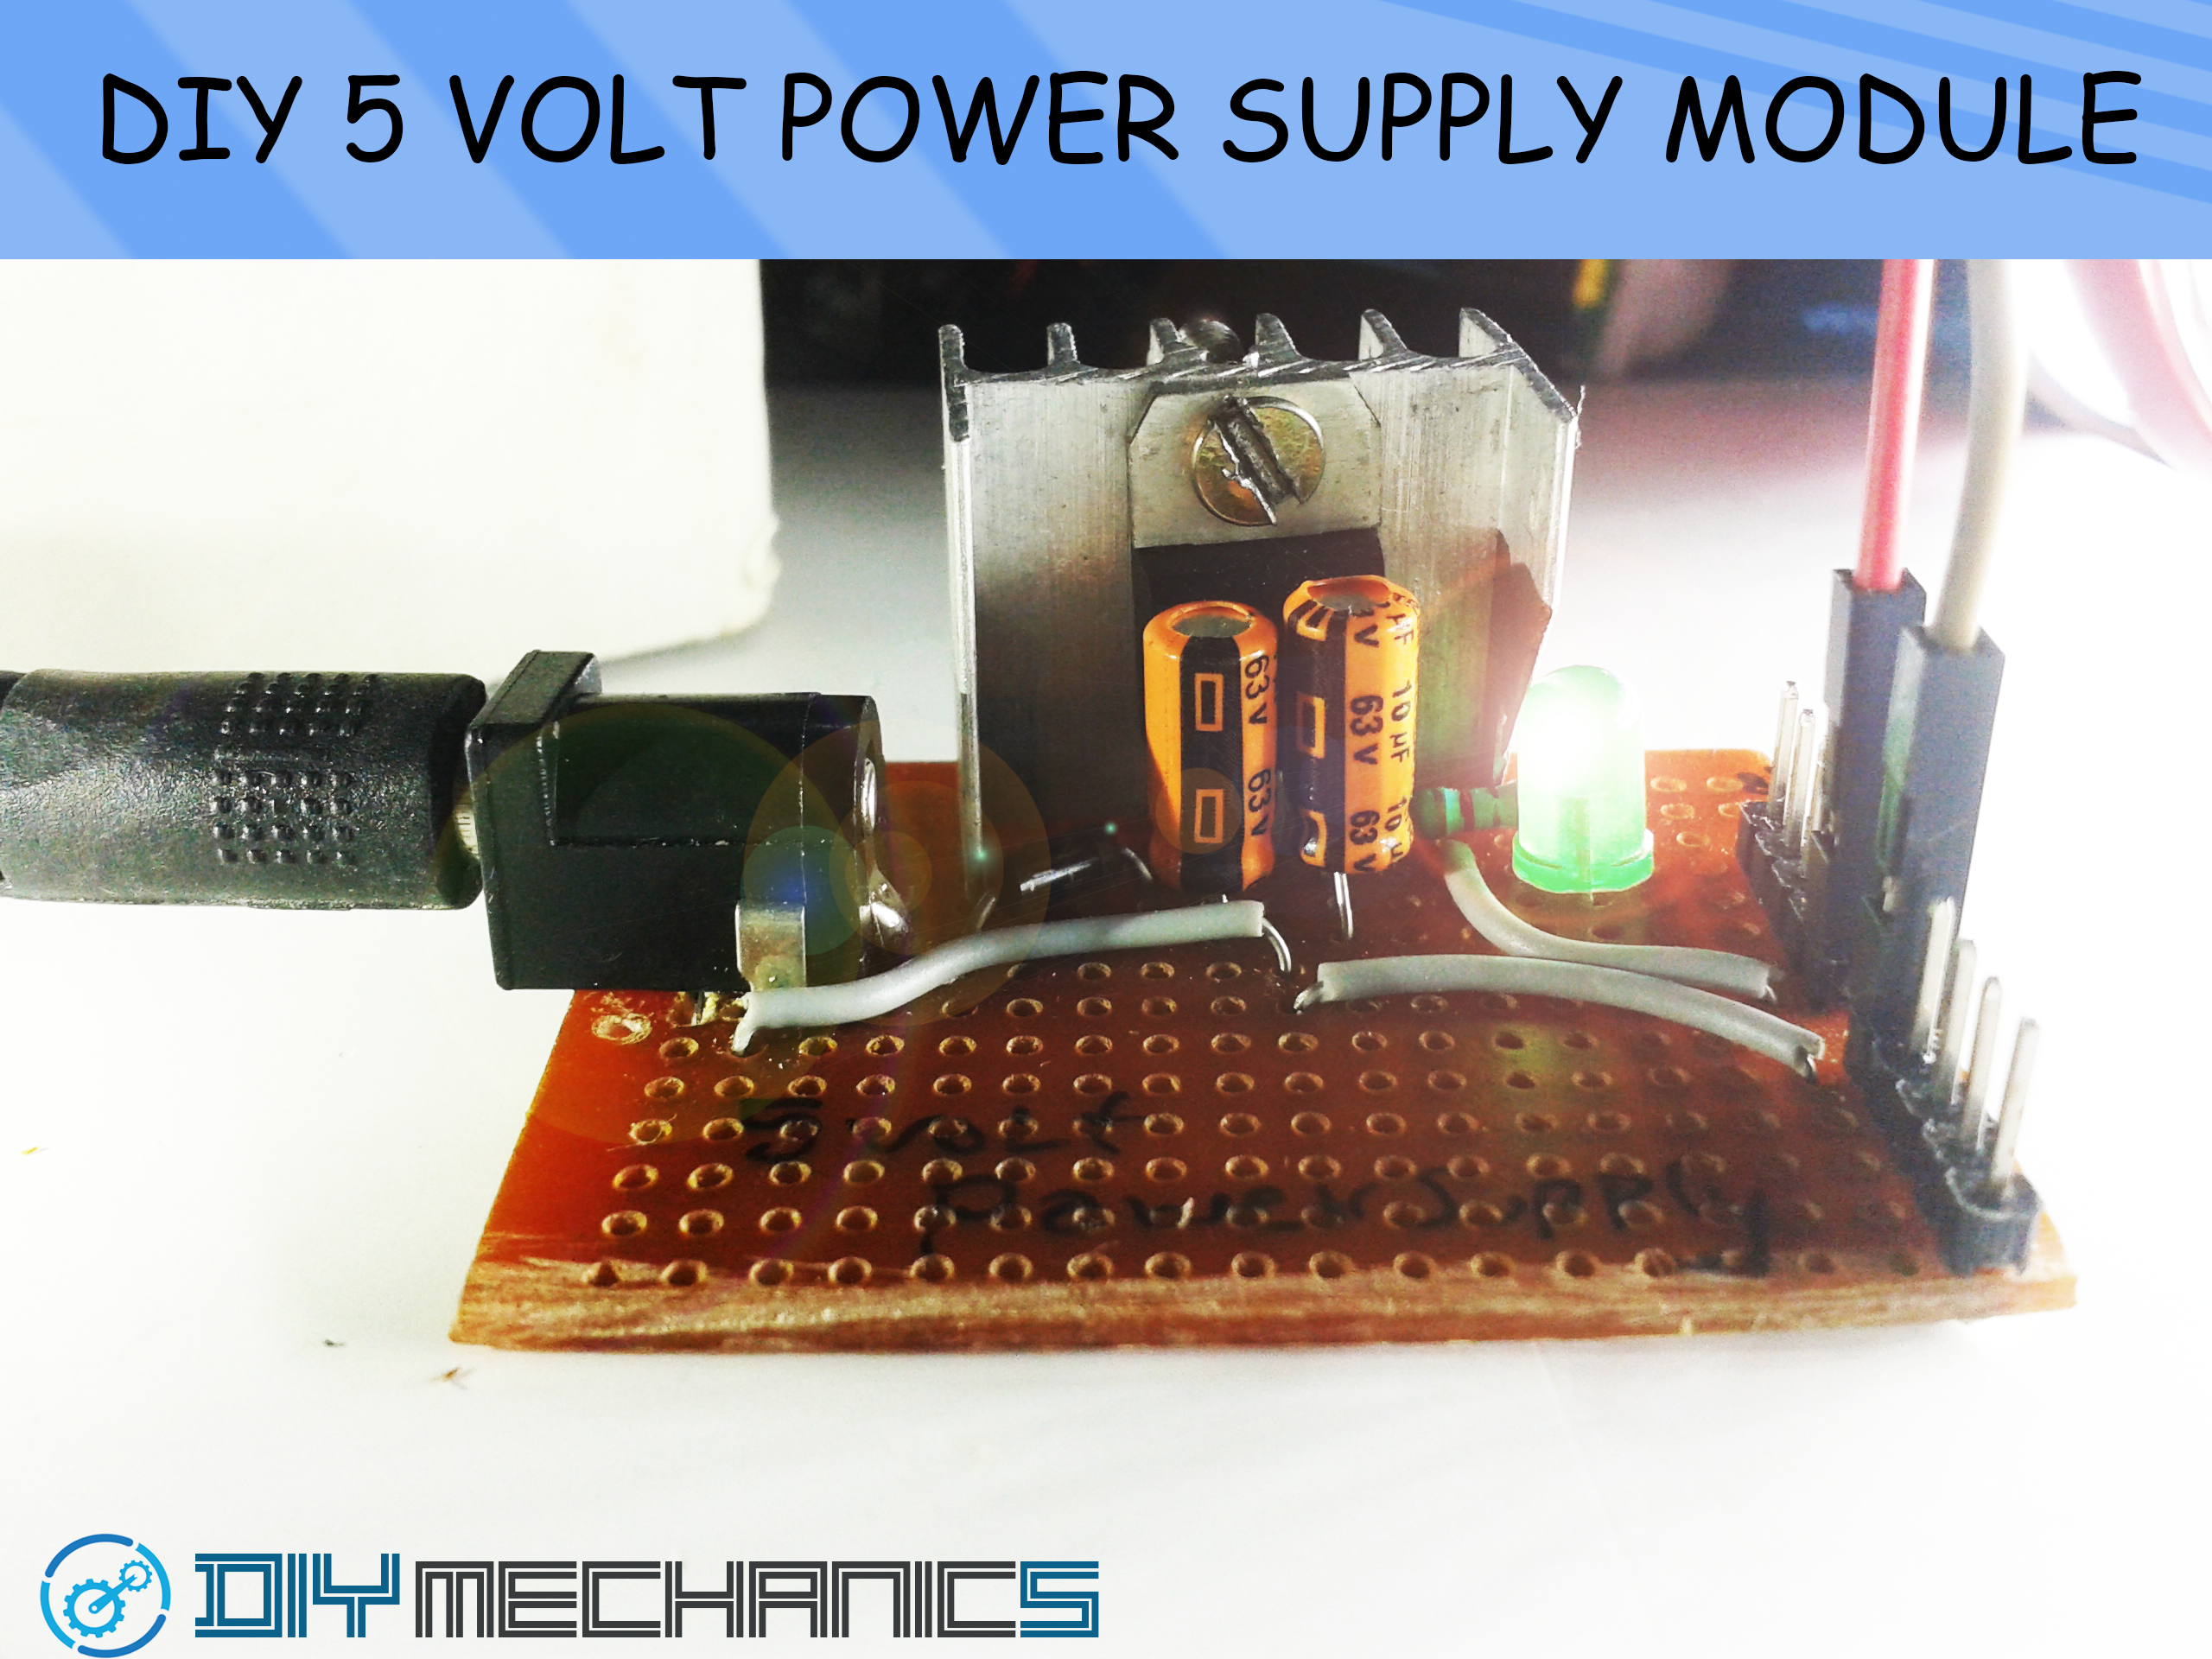 DIY 5 VOLT REGULATED POWER SUPPLY MODULE